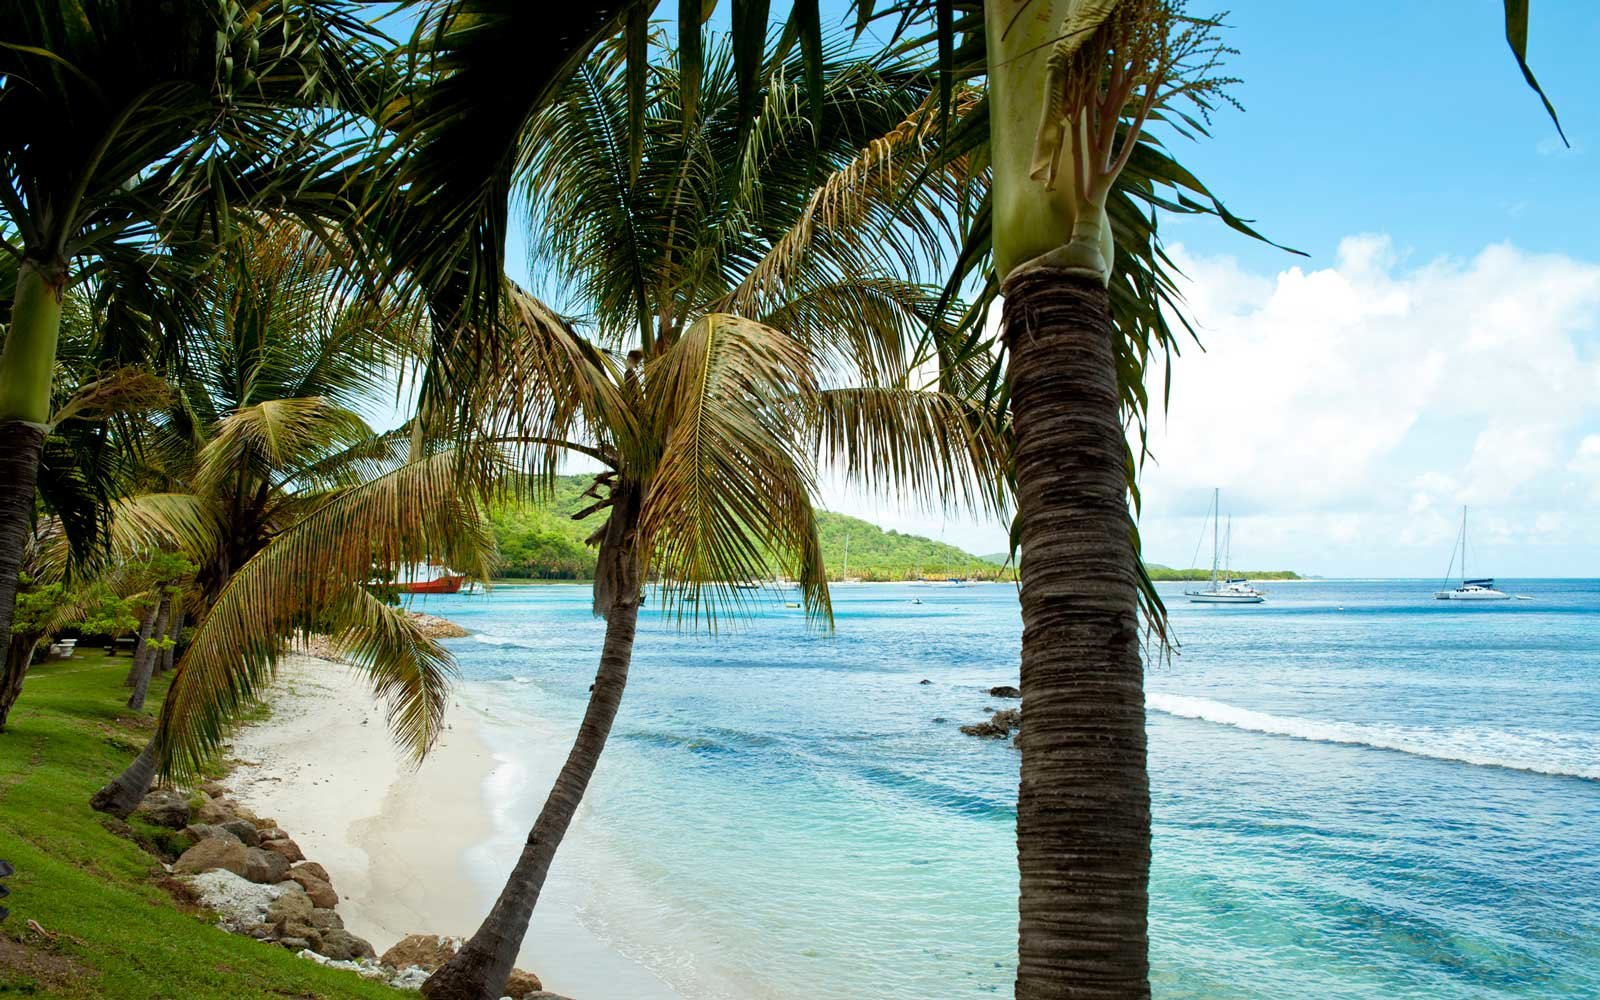 Beach In Mustique Island, St Vincent And The Grenadines, West Indies